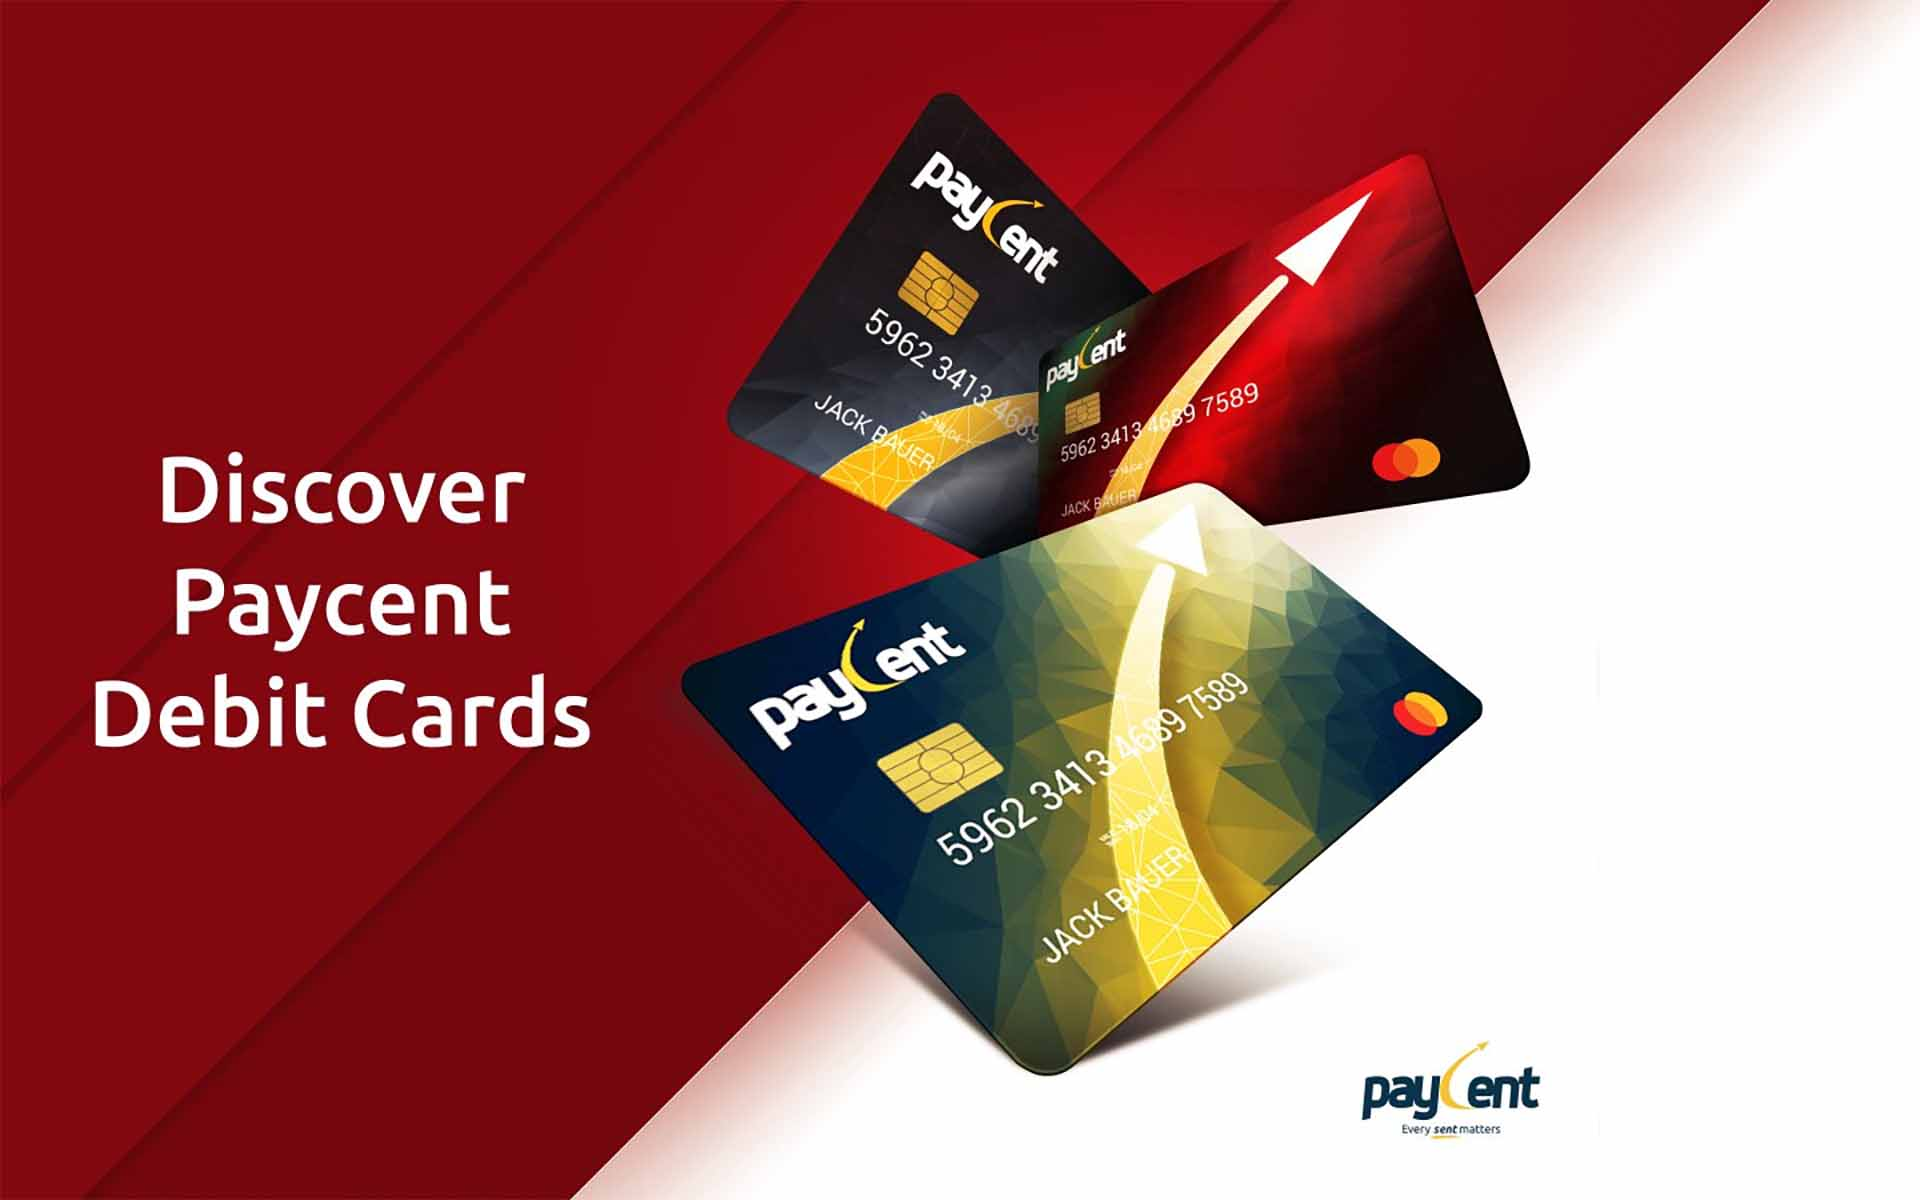 Paycent Debit Cards